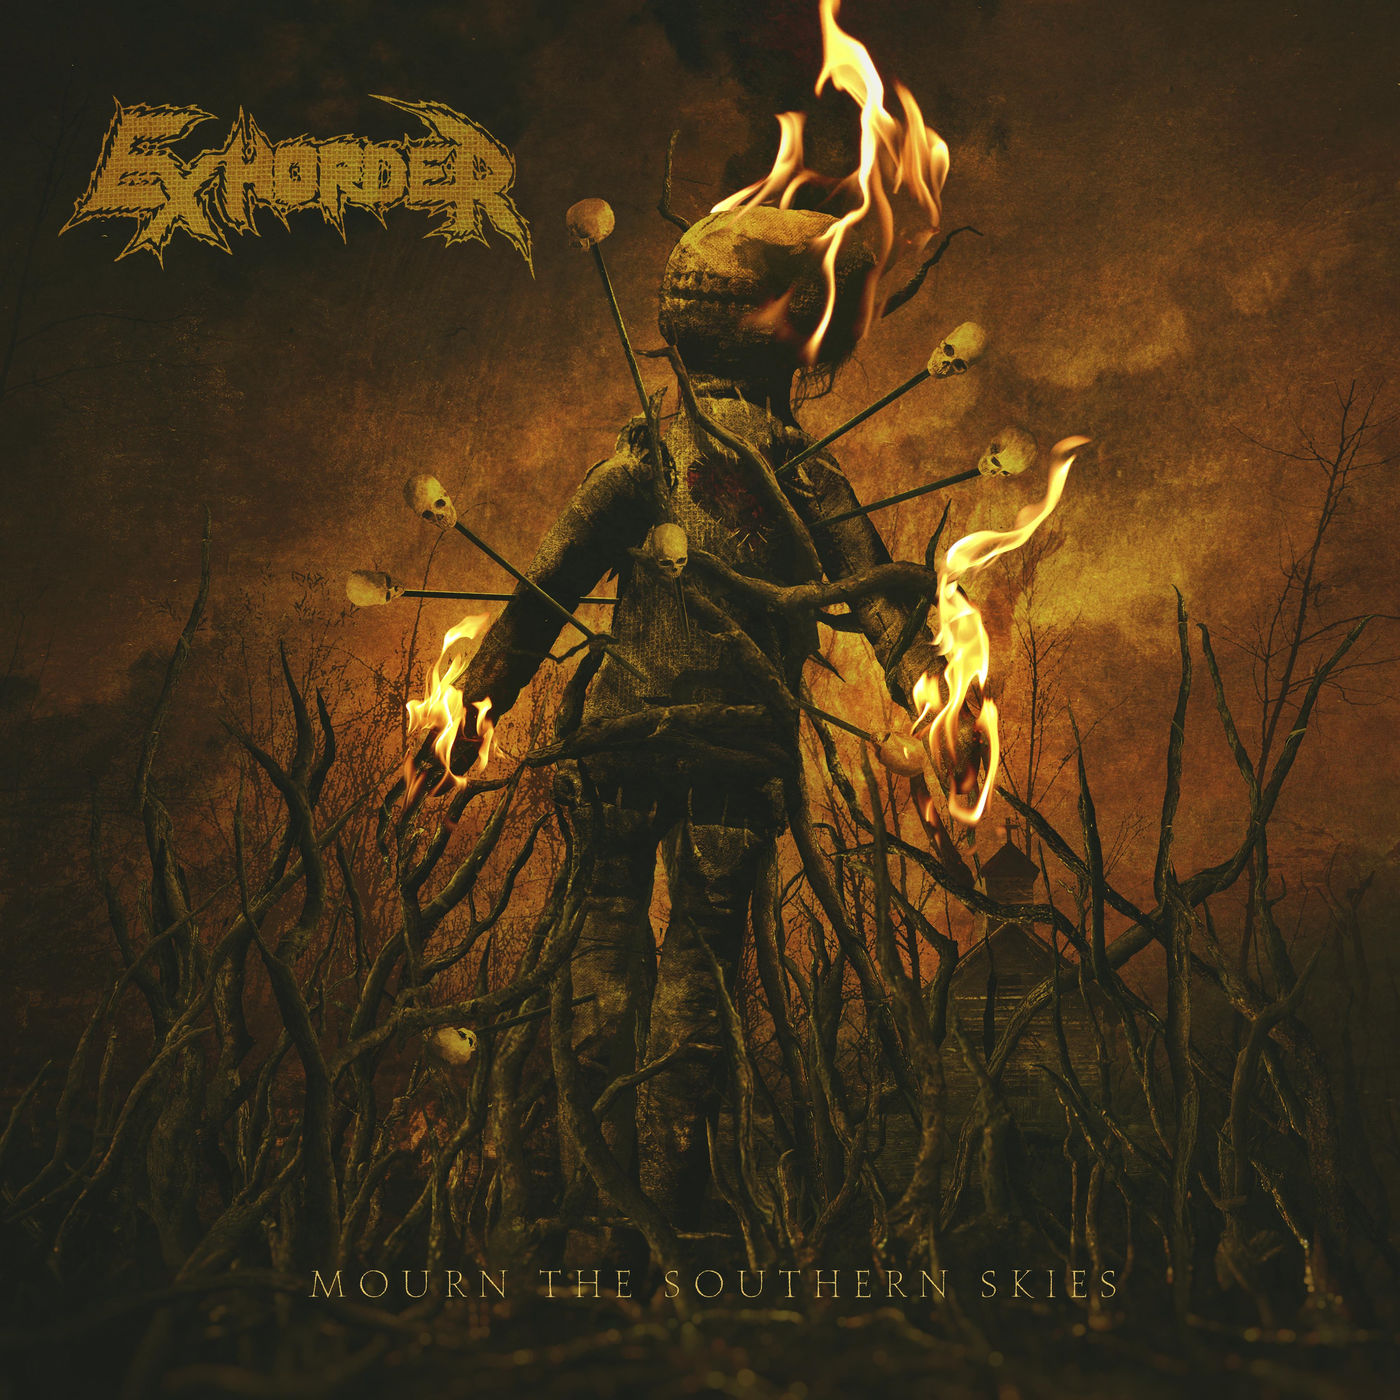 Exhorder - Mourn the Southern Skies (2019)